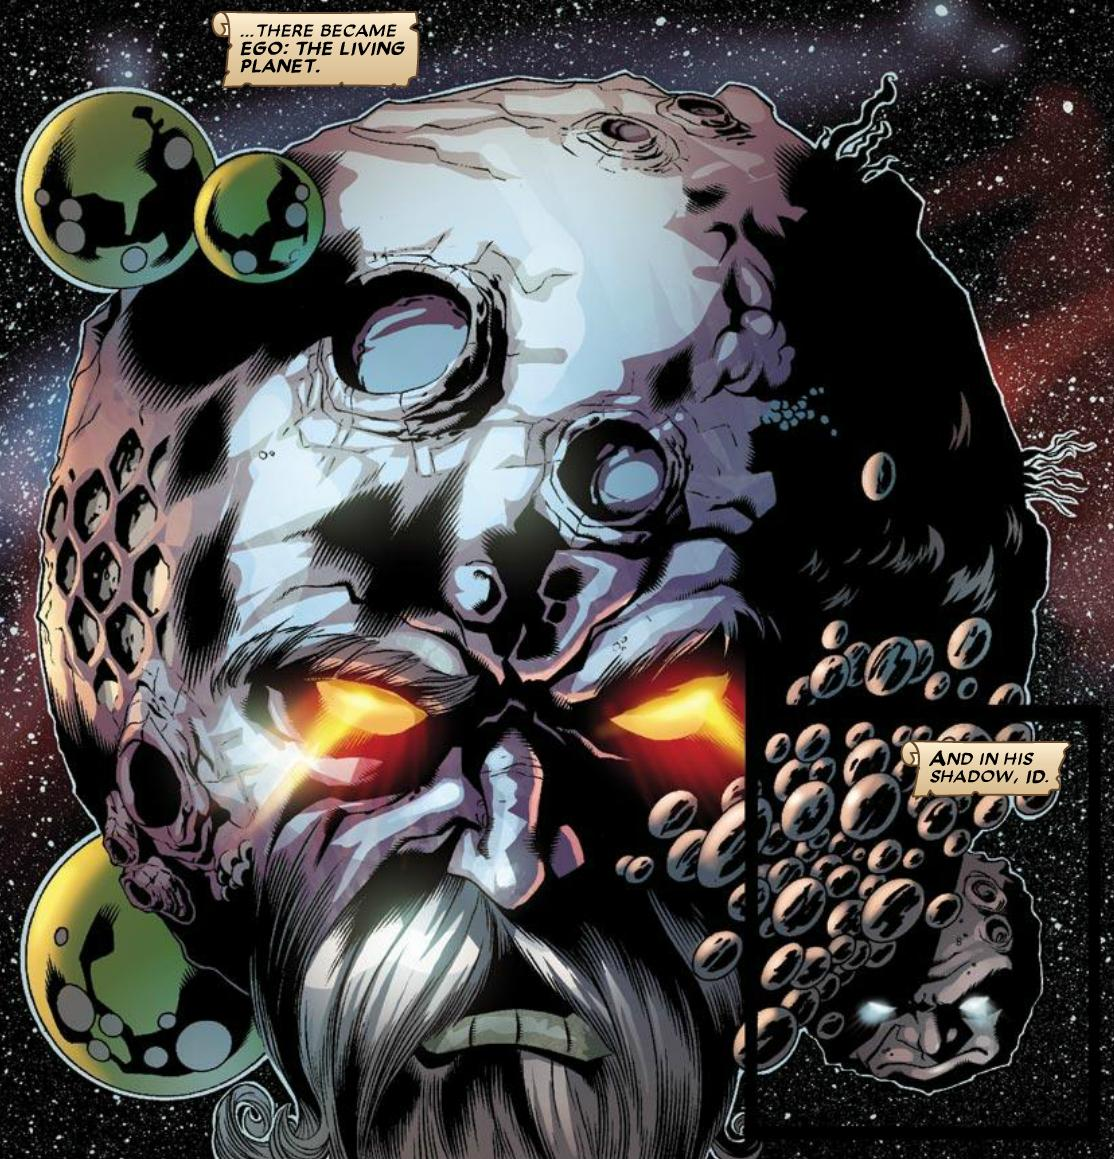 Ego is the name of a 'living planet' in Marvel comics - proof that Lee did read Freud maybe